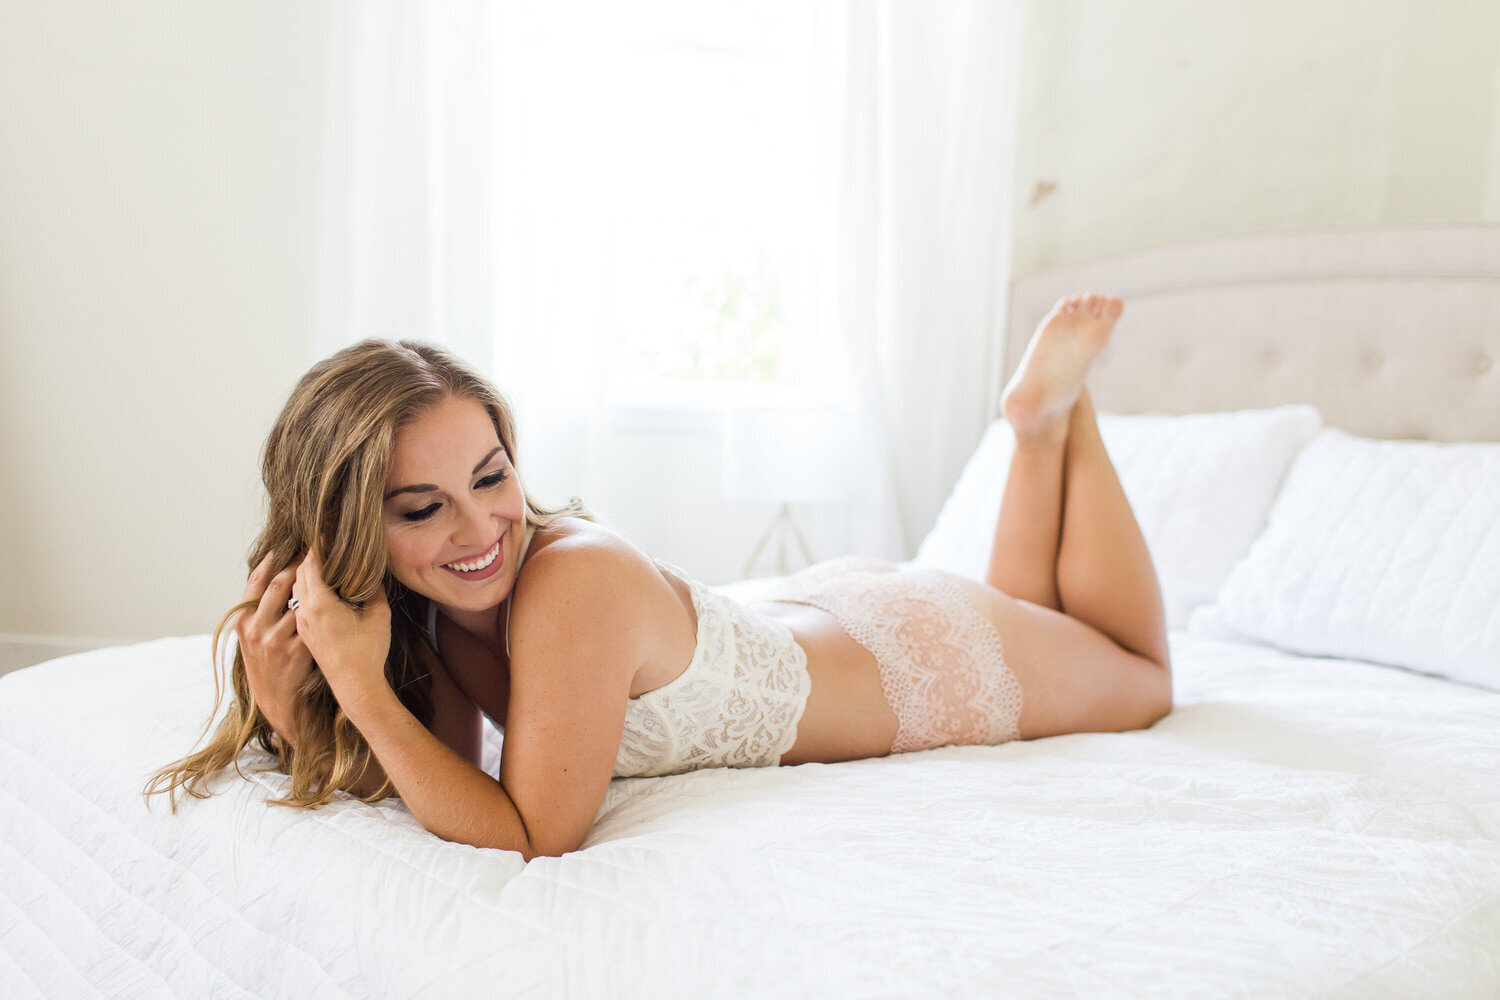 boudoir picture of woman in lingerie on bed